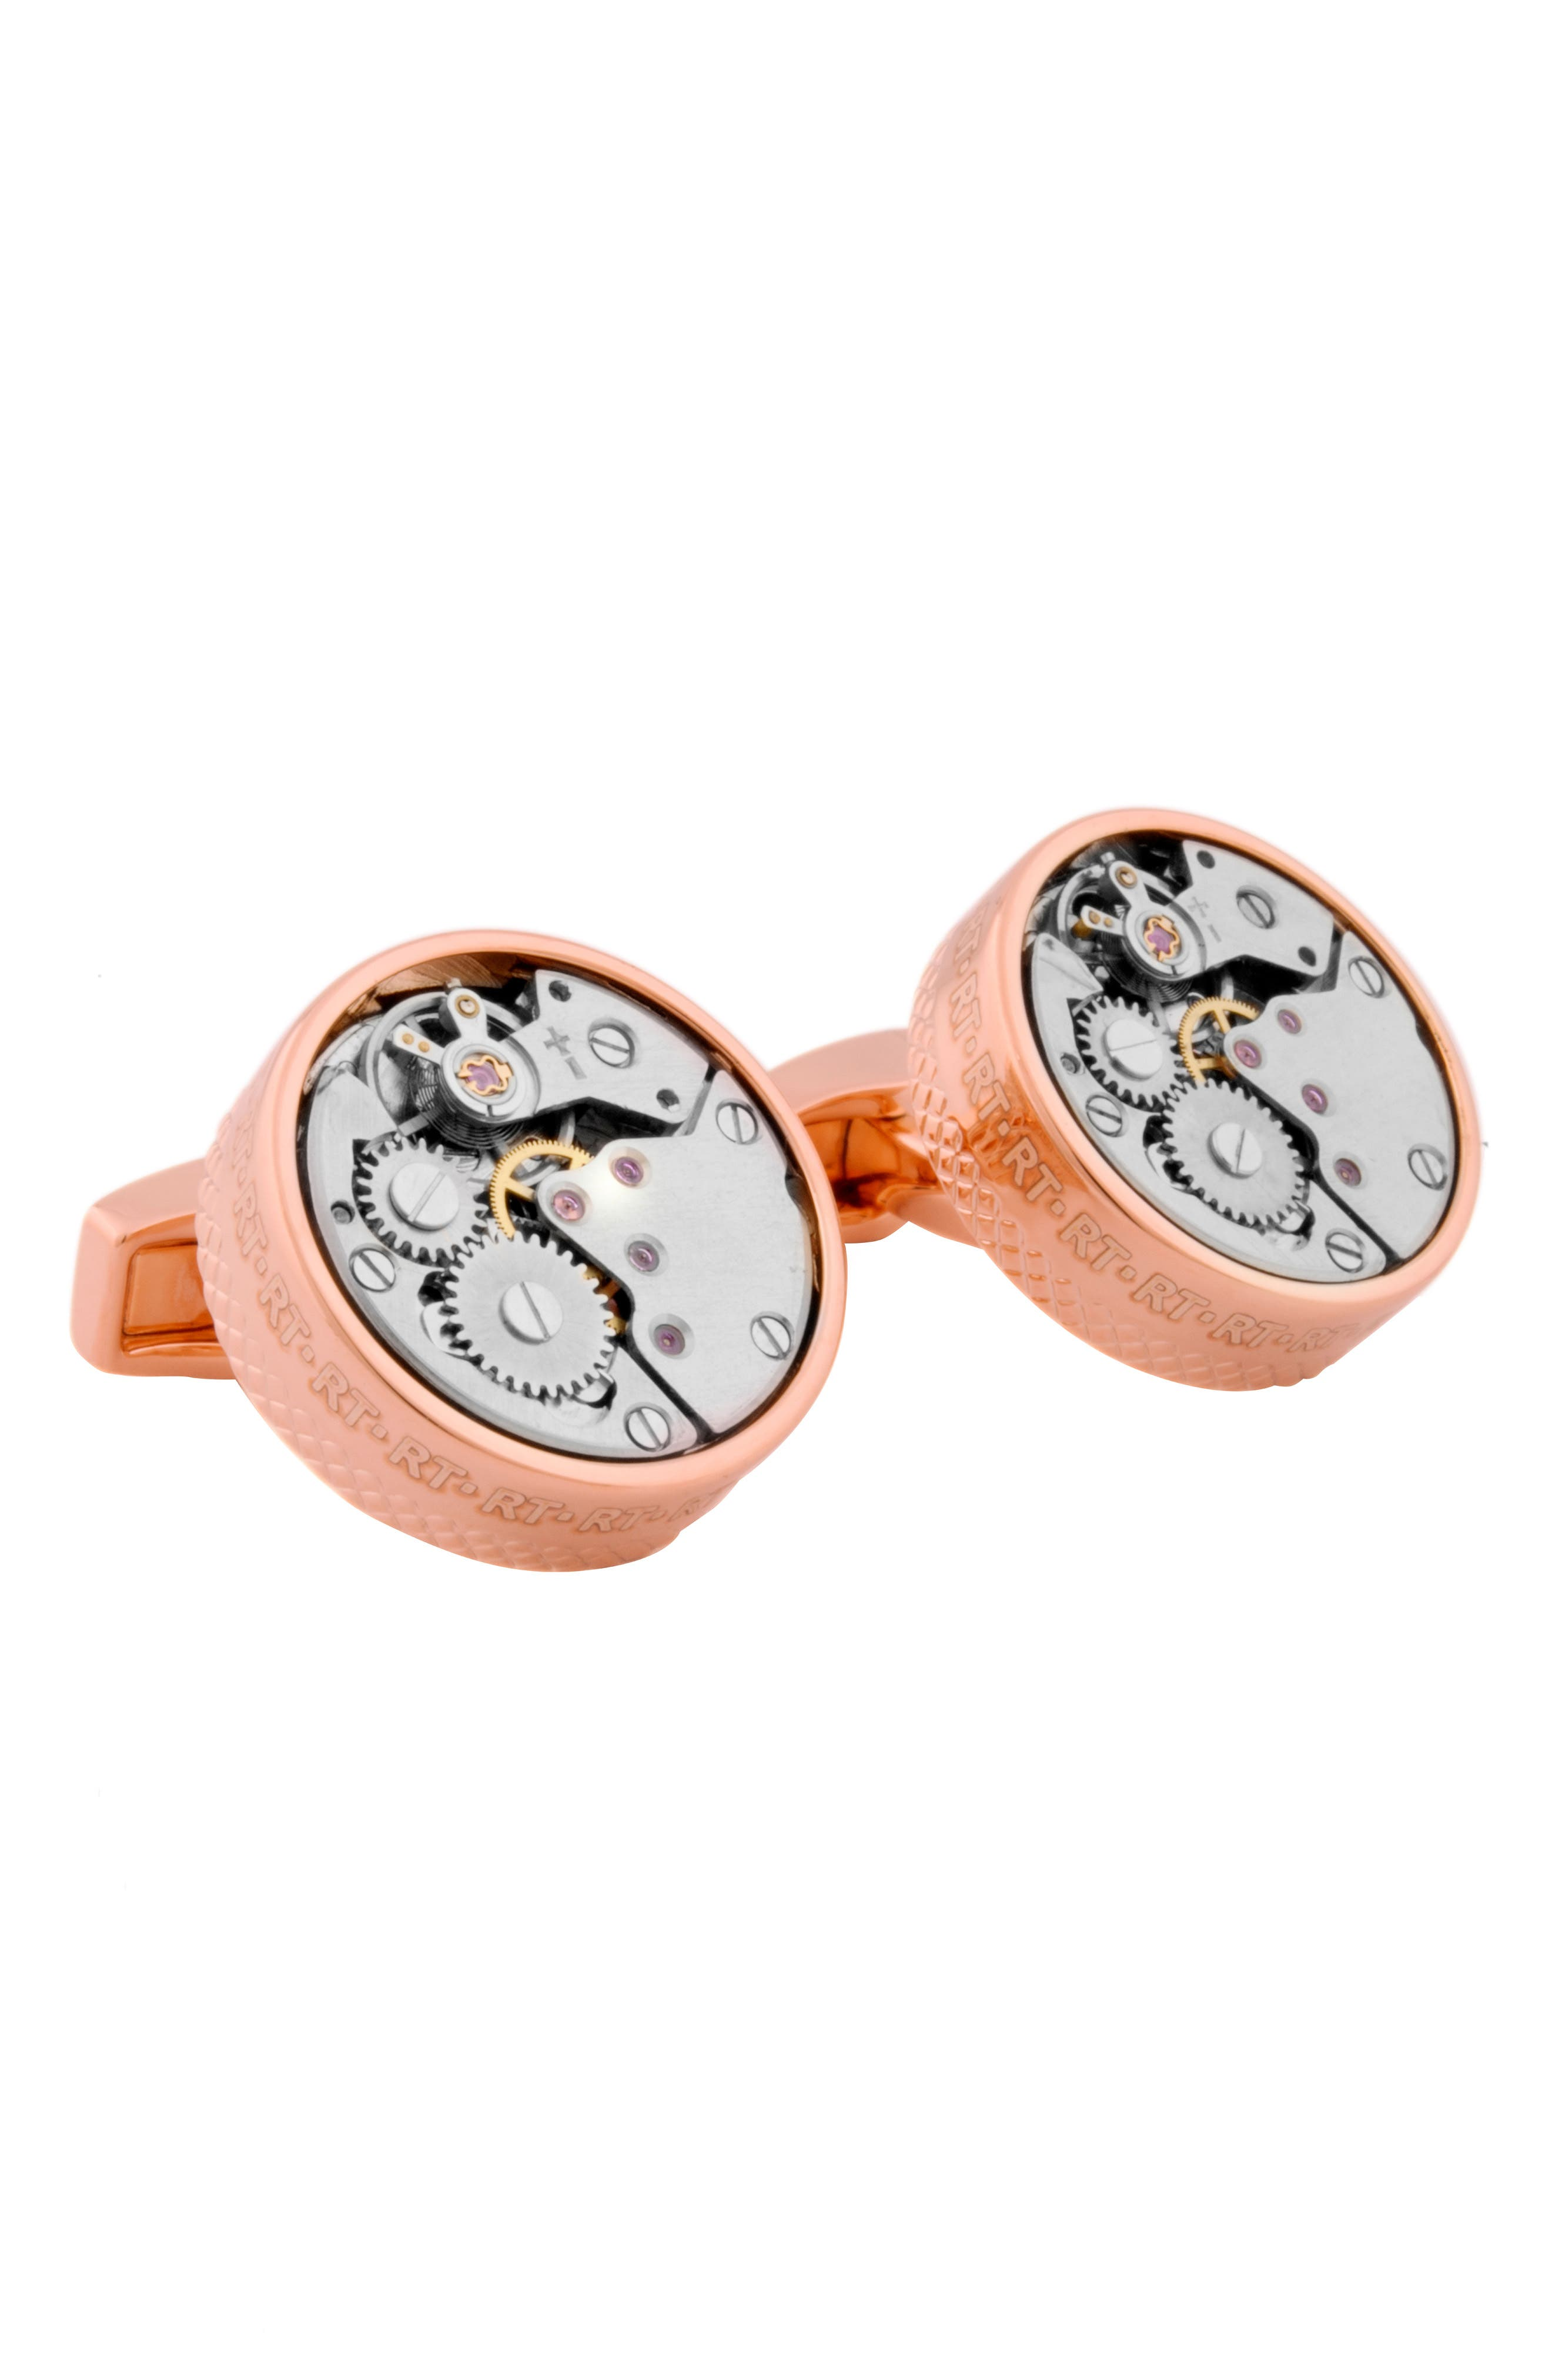 Skeleton Movement Cuff Links,                         Main,                         color, Rose Gold